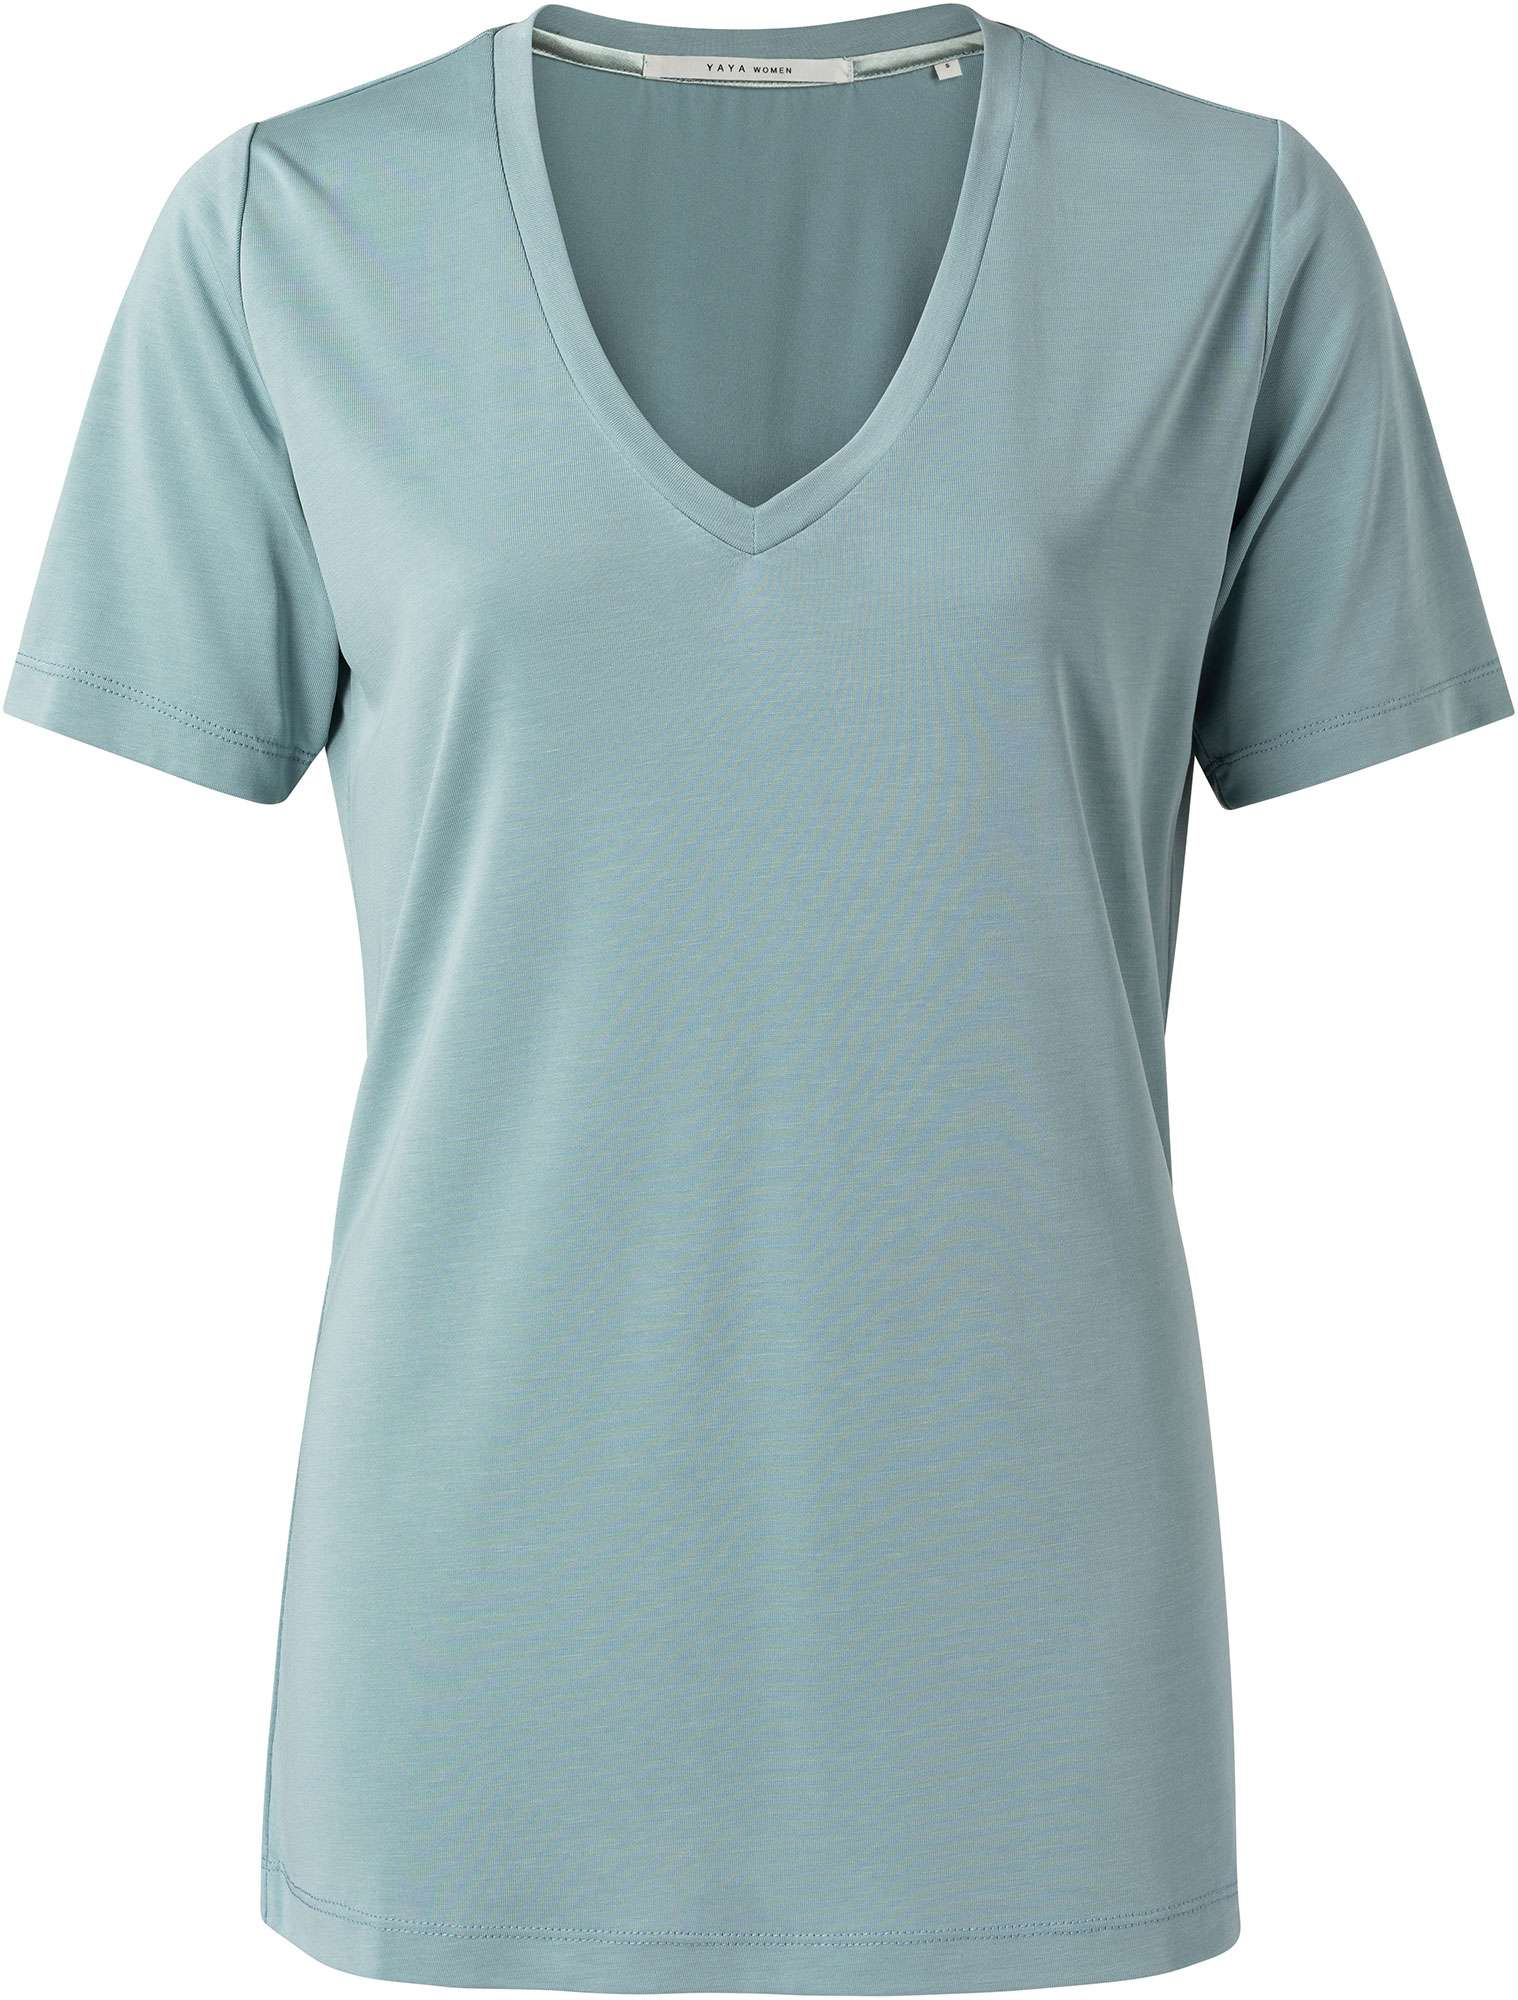 Modal v-neck t-shirt rainy sky